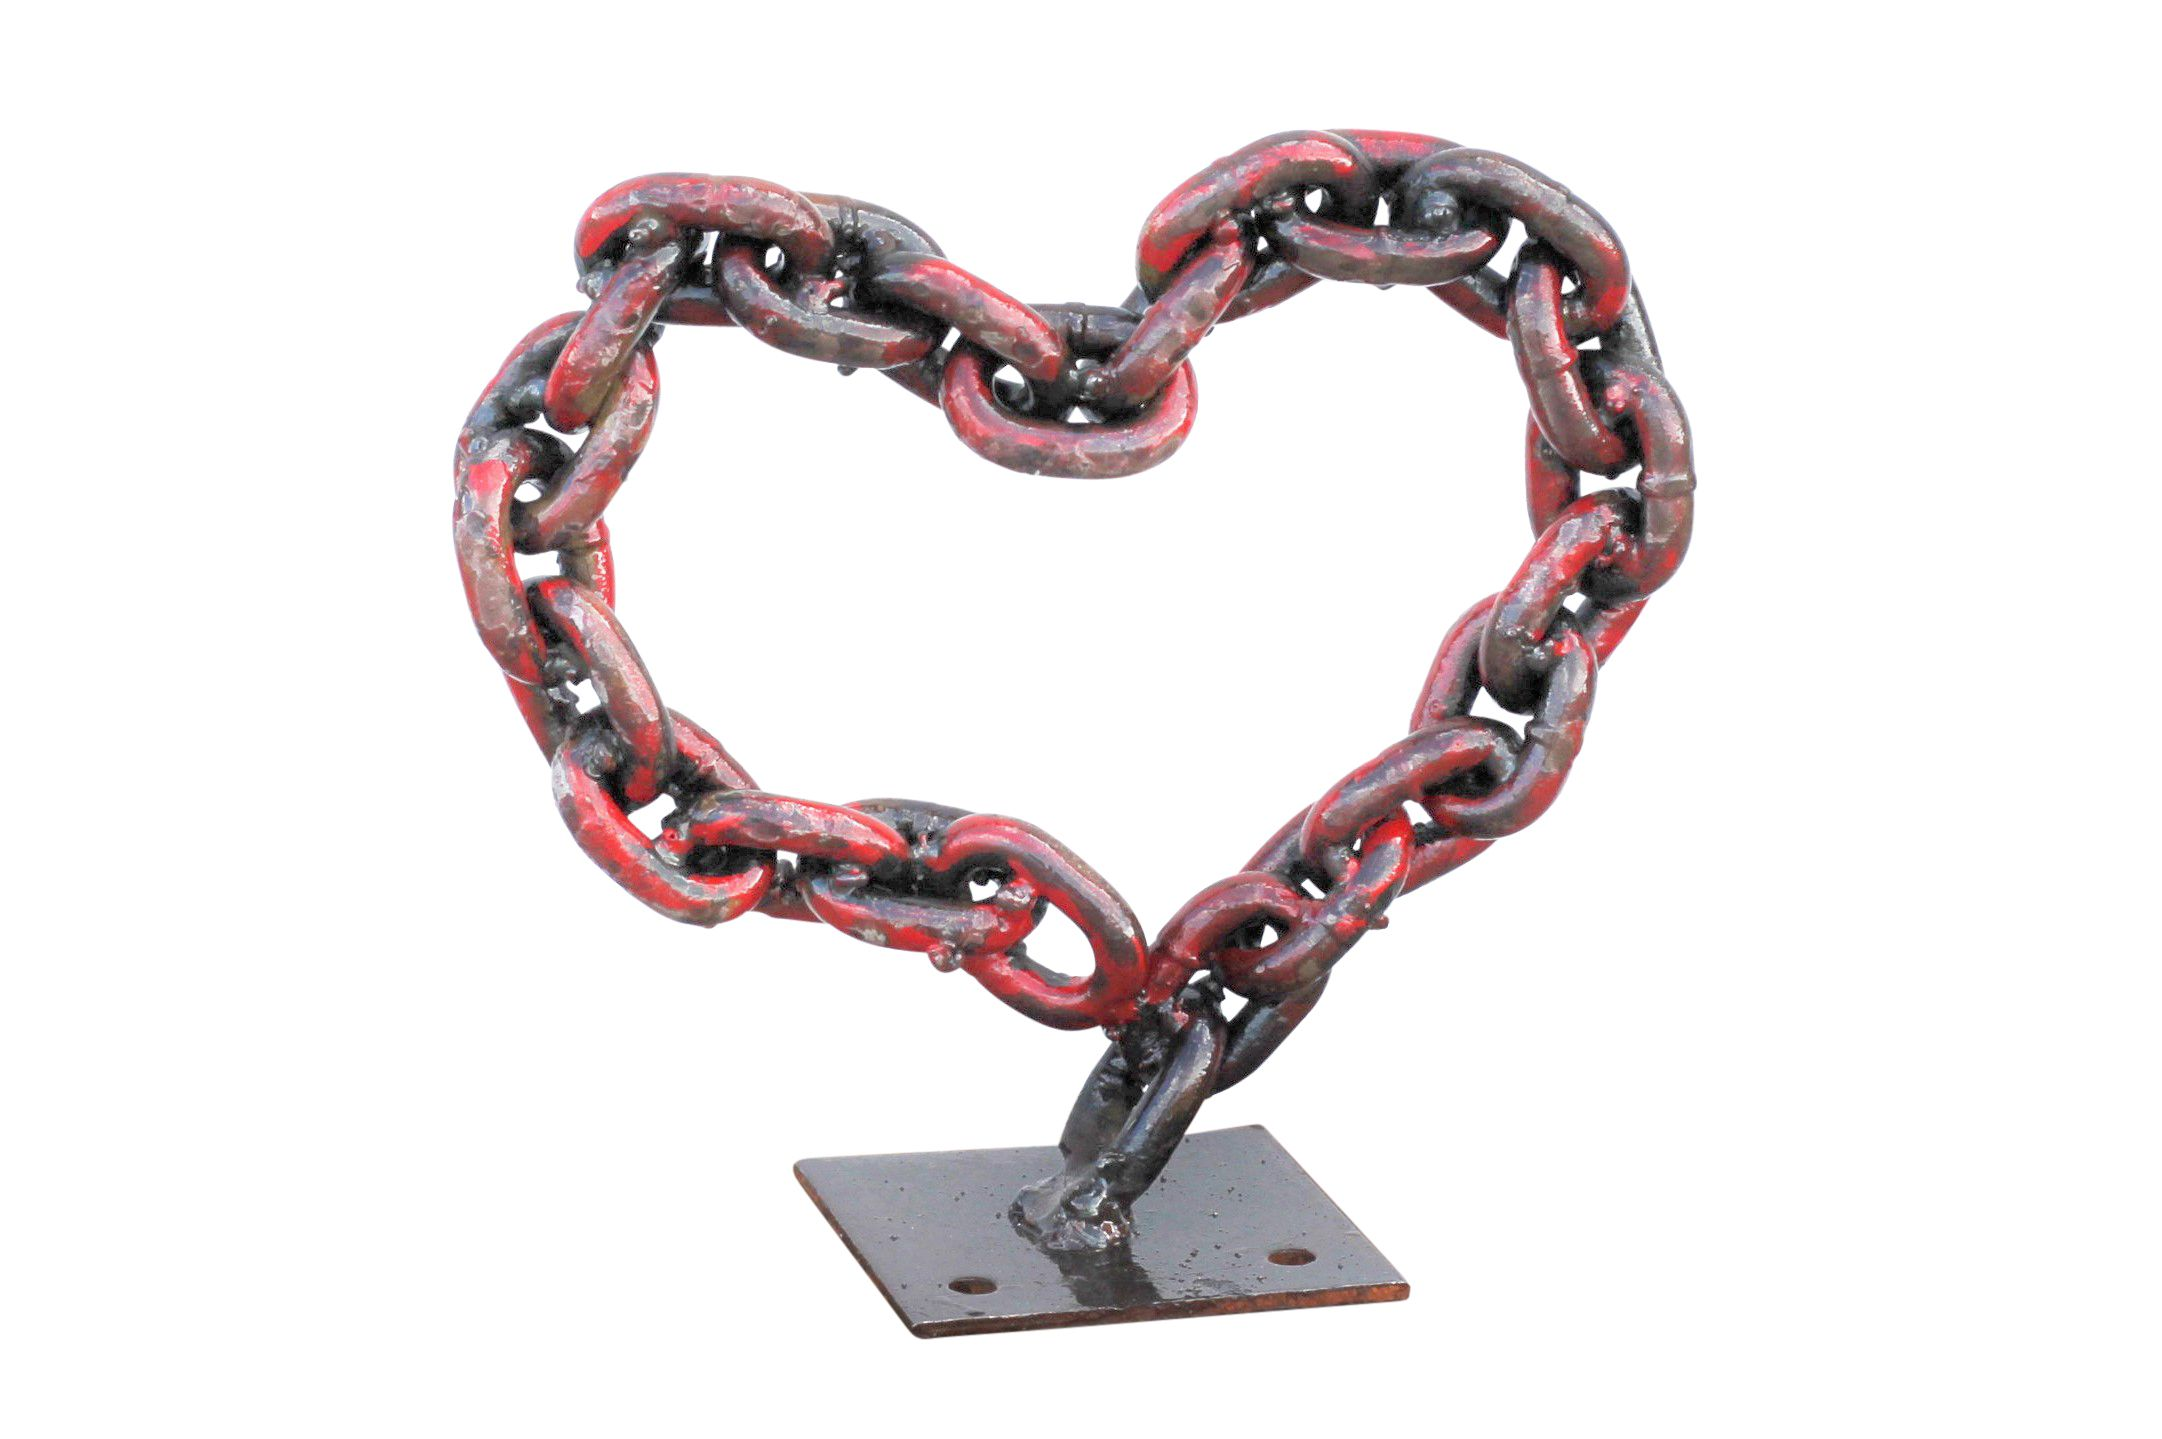 Buy a hand made metal red chain heart valentines day gift ideas custom made metal red chain heart valentines day gift ideas for her she negle Images